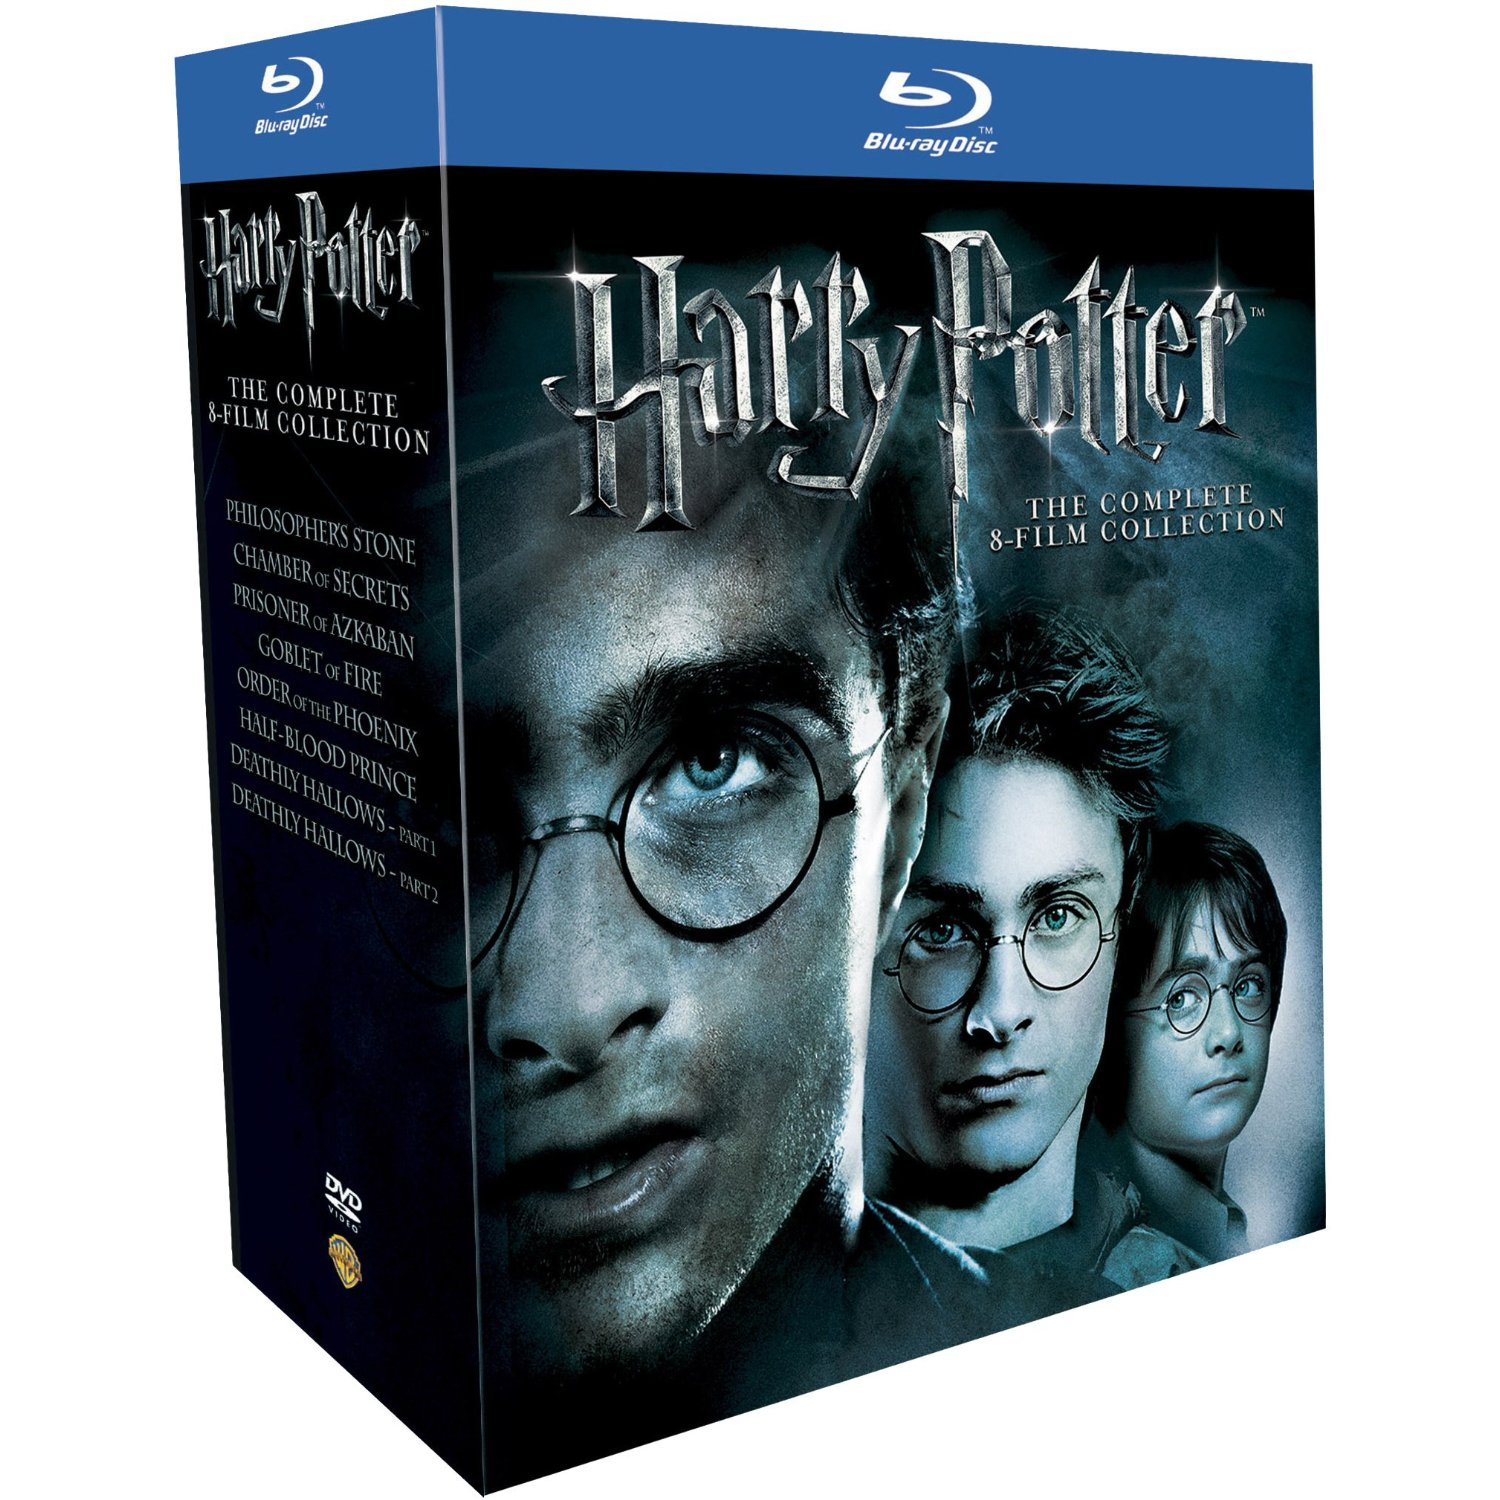 Harry Potter Deathly Hallows Part 1 720p Tpb Movie